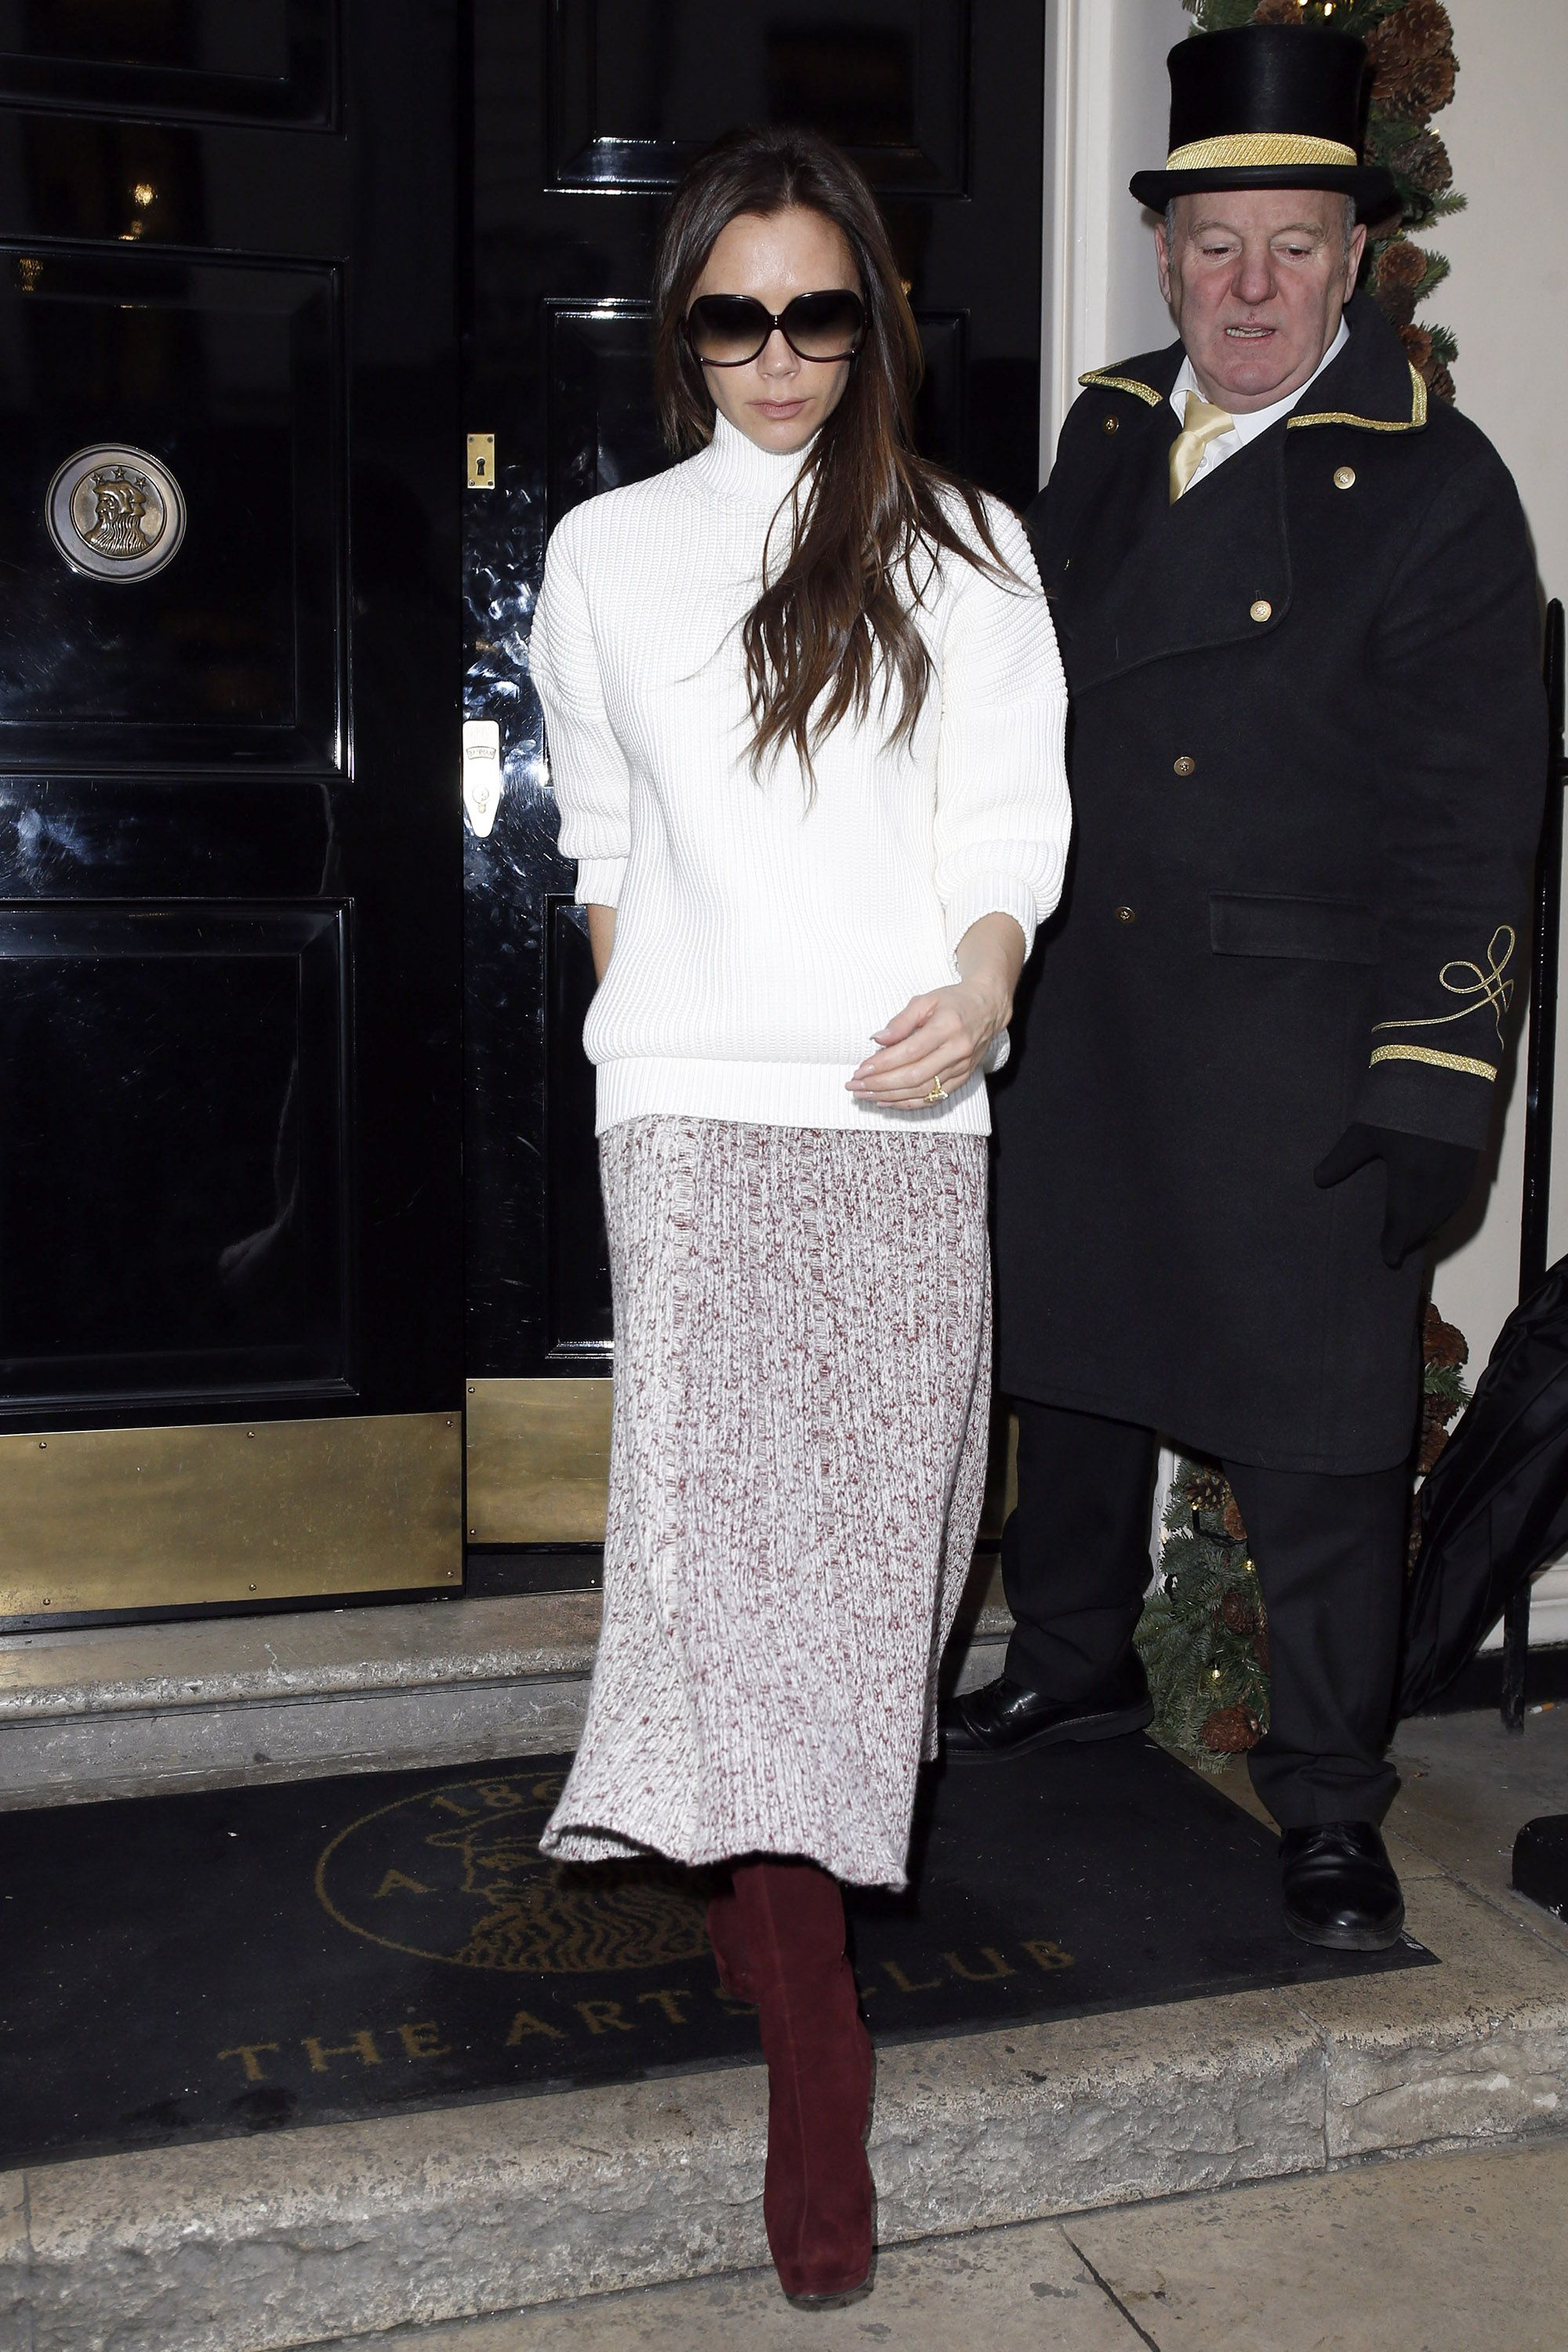 LONDON, UNITED KINGDOM - DECEMBER 12: Victoria Beckham seen leaving The Arts Club, Dover Street on December 12, 2014 in London, England. Photo by Neil Mockford/Alex Huckle/GC Images)